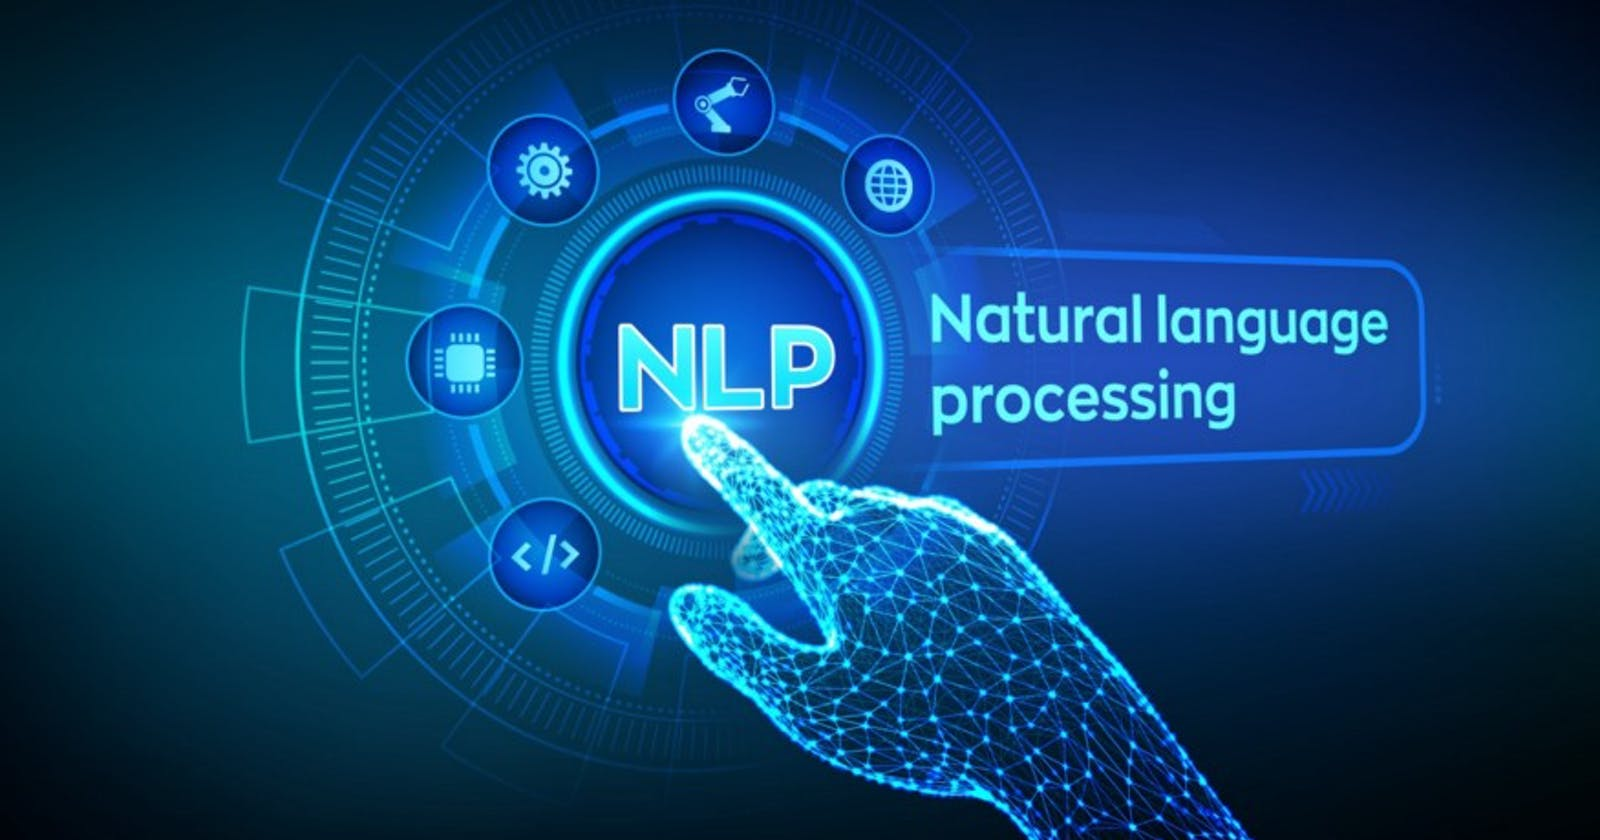 NLP: Basic Pattern Matching using Python's spaCy library